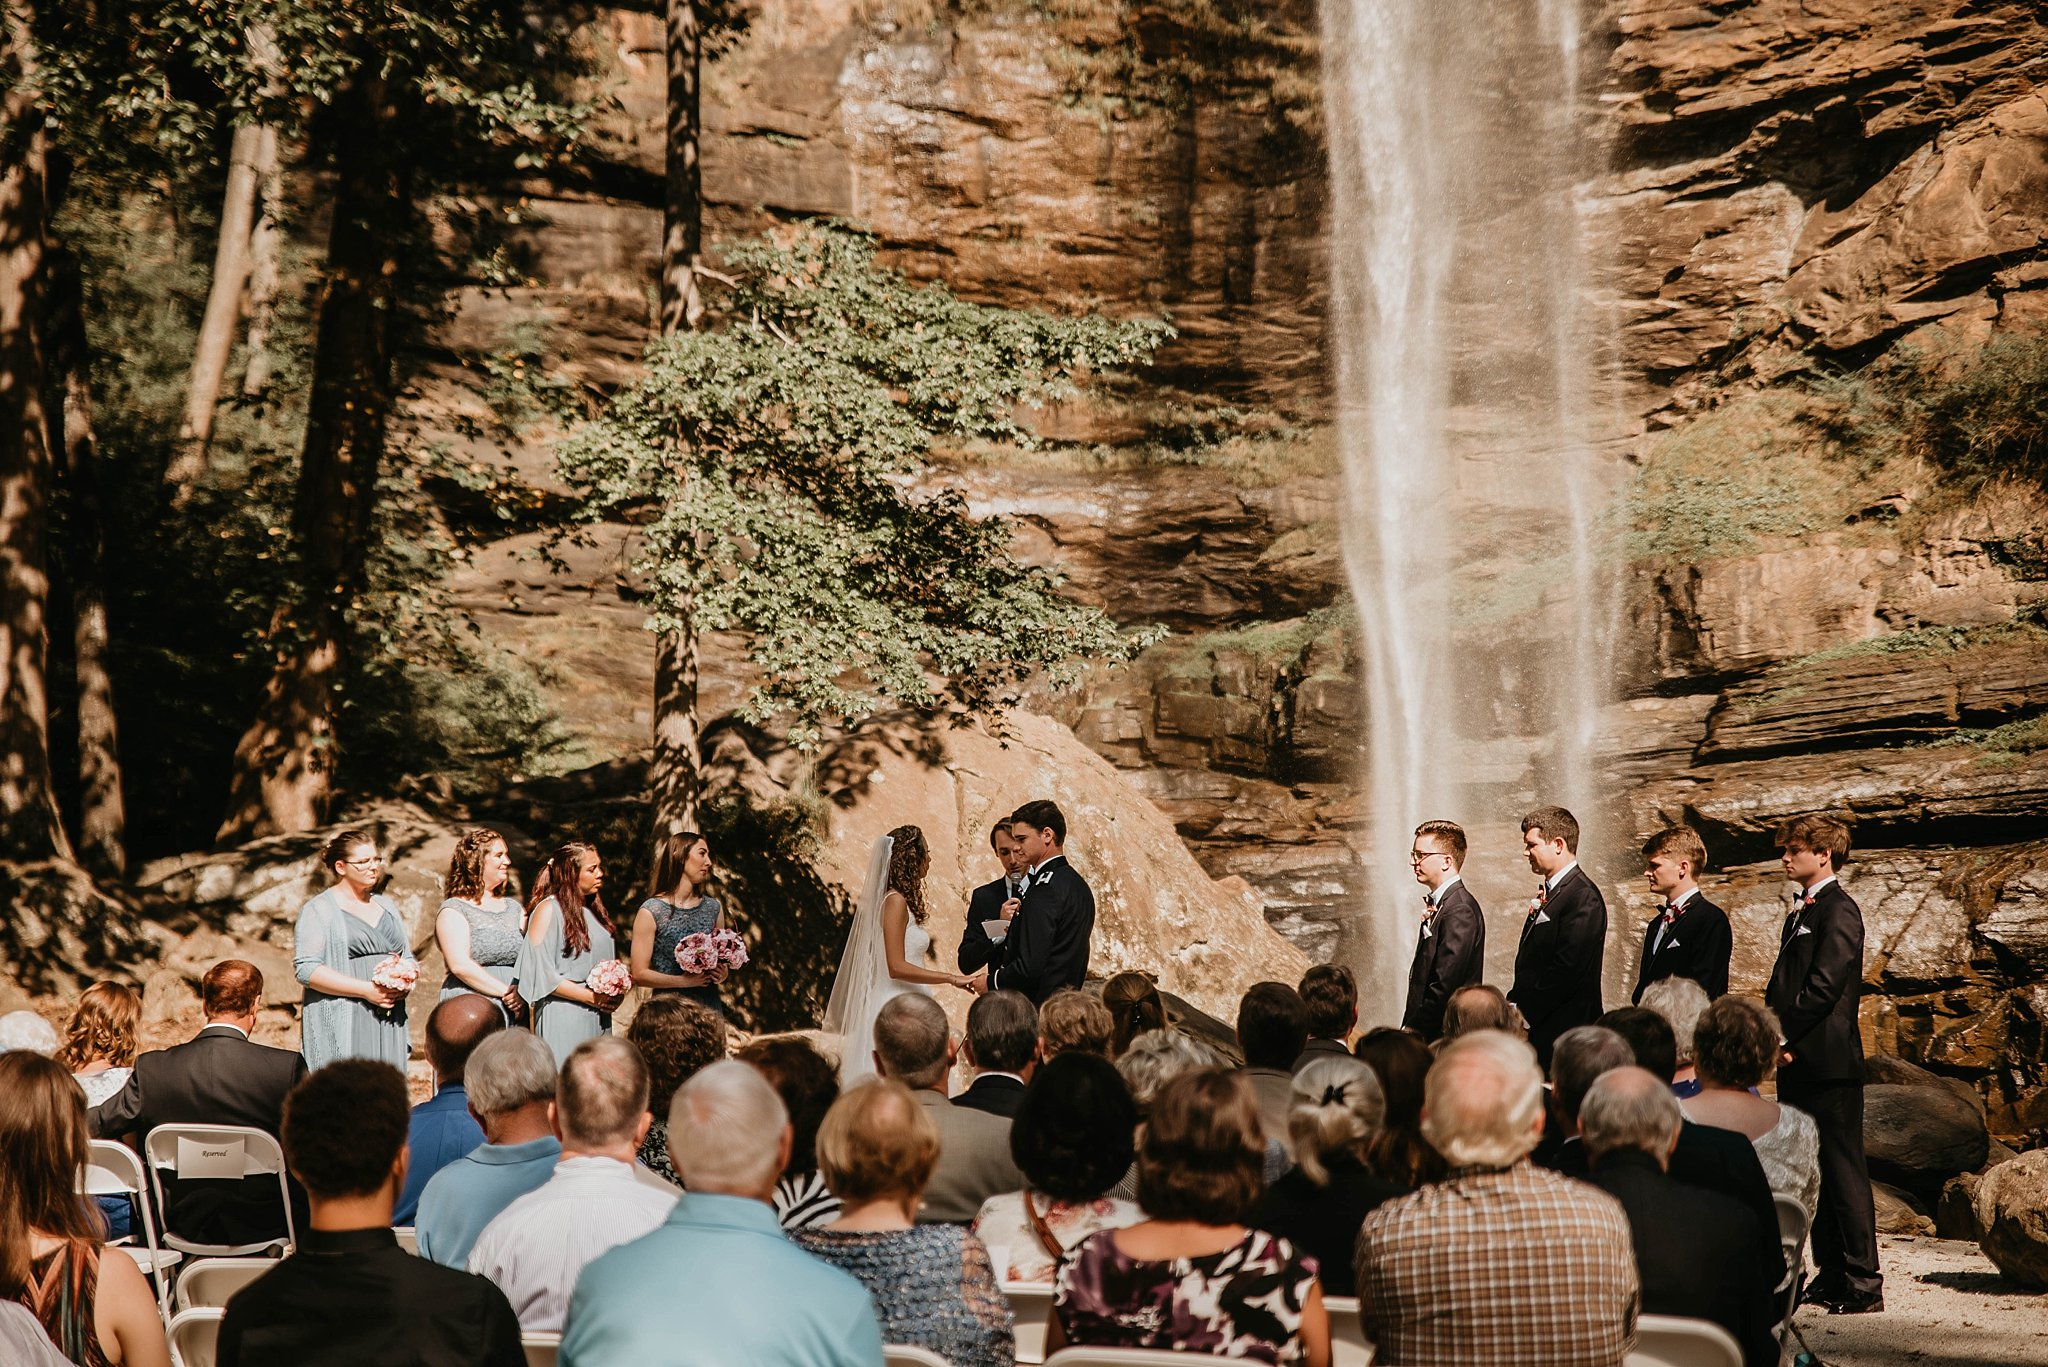 ogletree-estates-georgia-toccoa-falls-wedding_0060.jpg